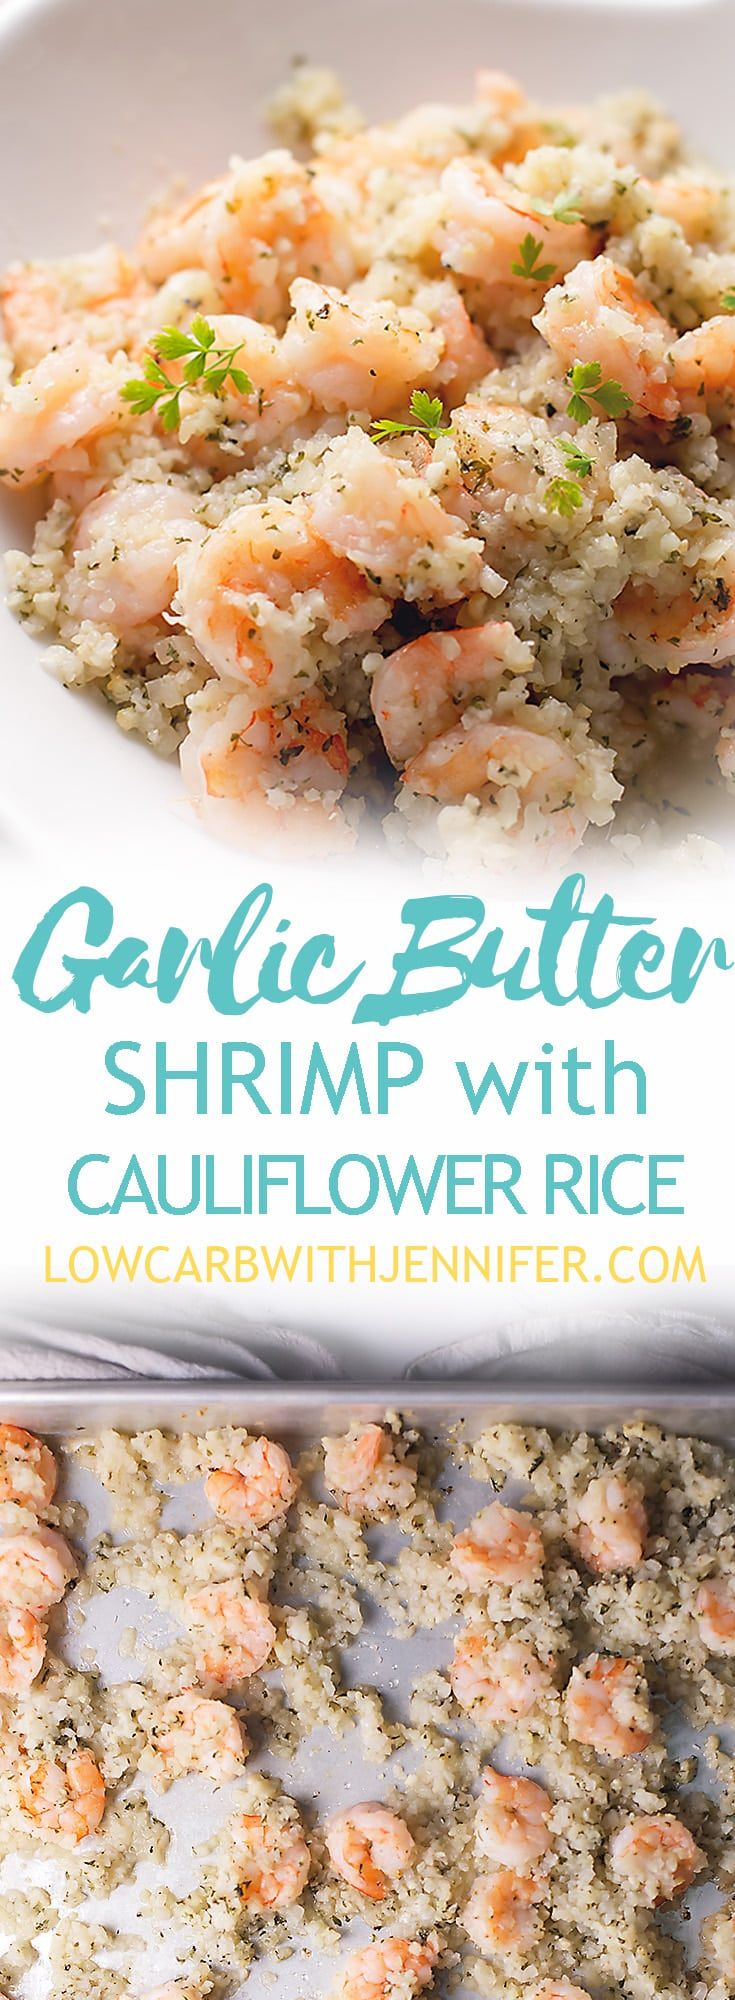 This Garlic Butter shrimp with cauliflower rice is an easy sheet pan meal that can be on the table in less than 30 minutes. That makes this a low carb 30 minute meal! This garlic butter shrimp and cauliflower rice is THM-S